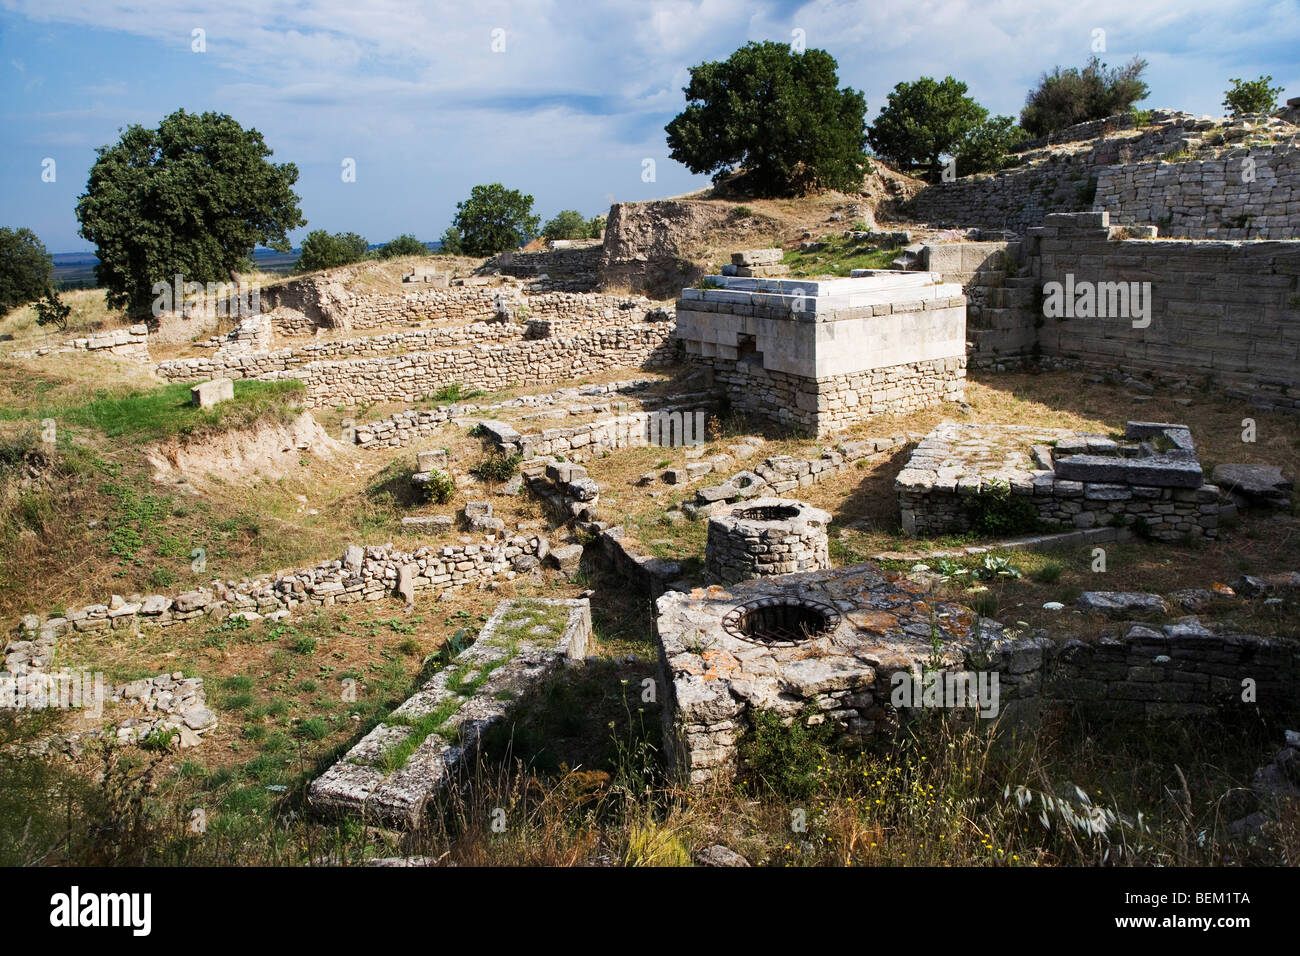 Archeological site of Troy, ruins of the ancient city of Troy, Turkey, Europe - Stock Image